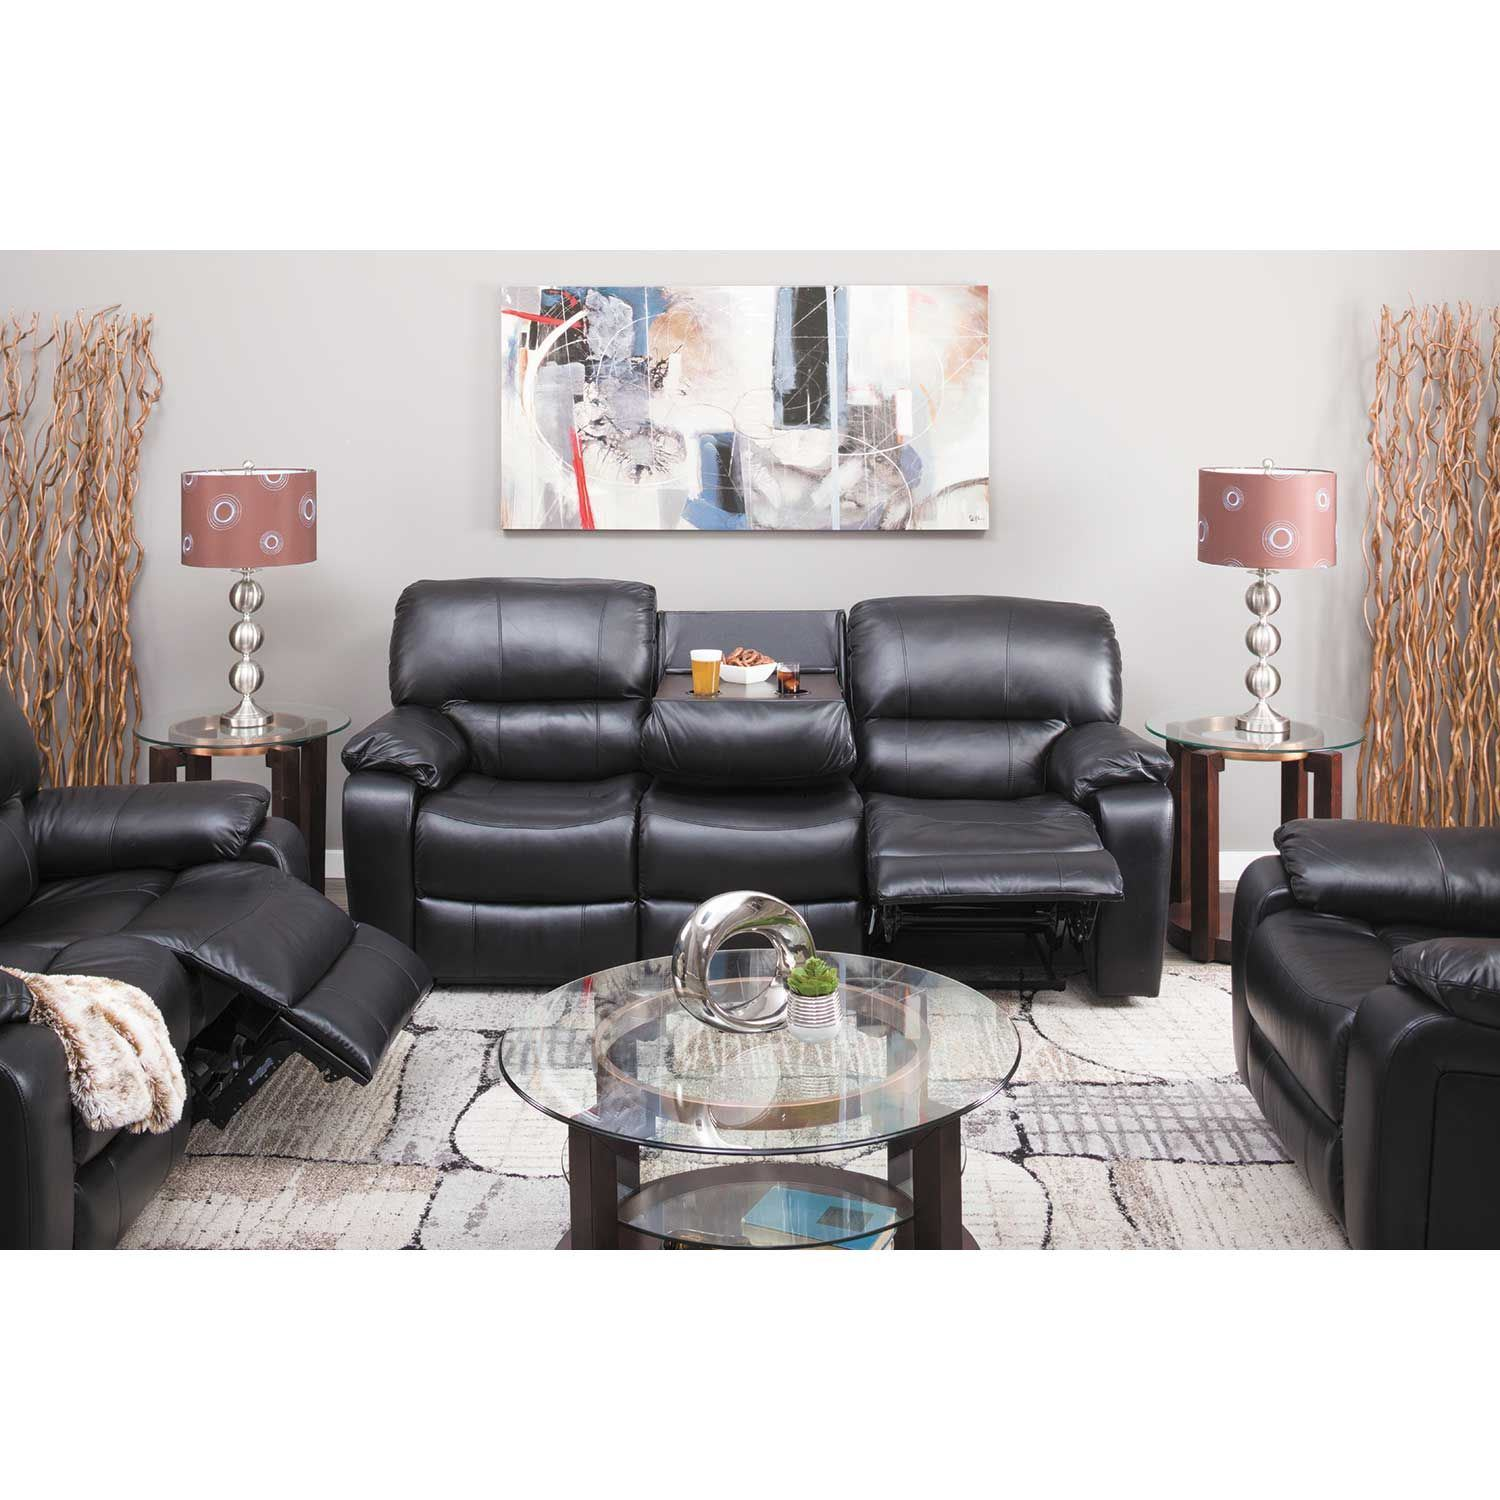 Picture of Wade Black Top Grain Leather Reclining Loveseat